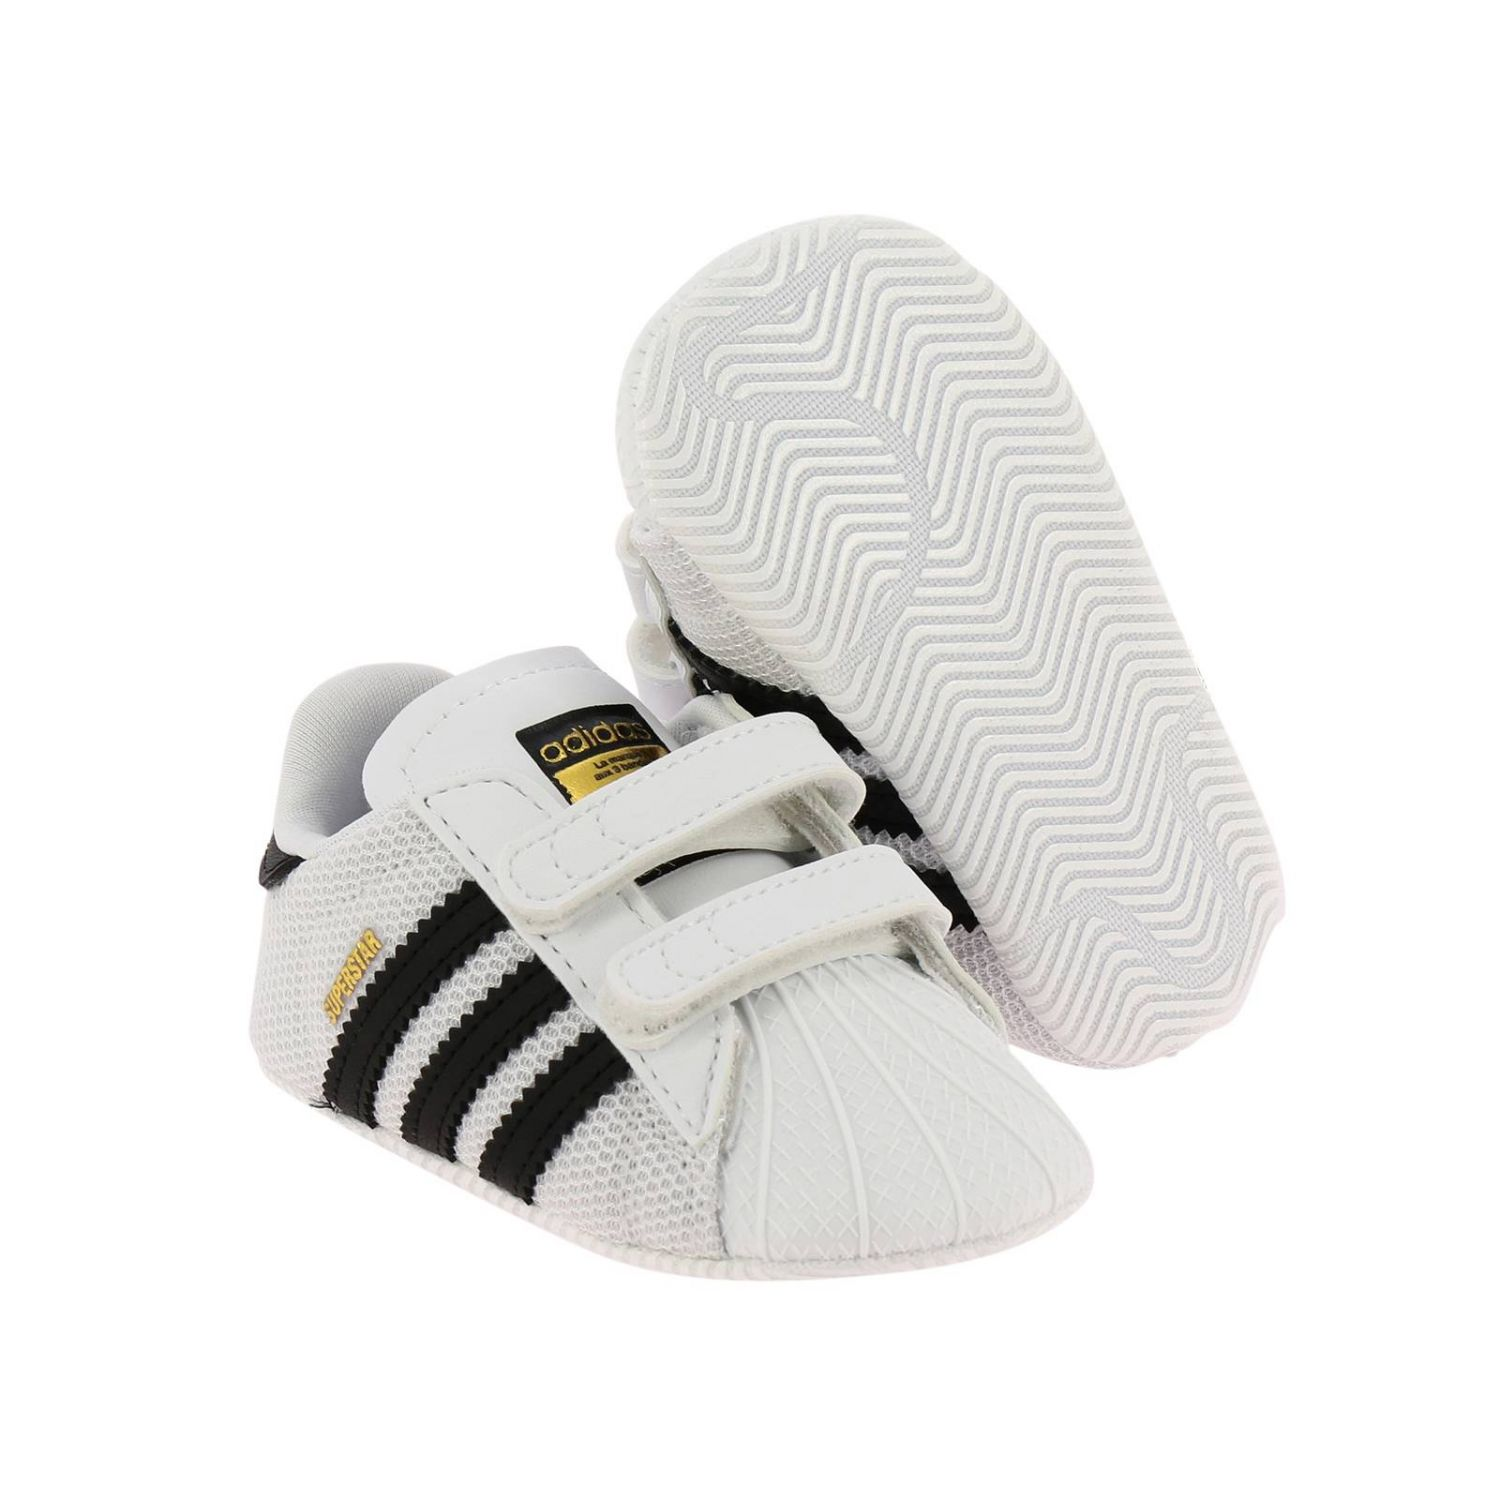 Shoes Adidas Originals: Adidas Originals Superstar sneakers in canvas and rubber white 2